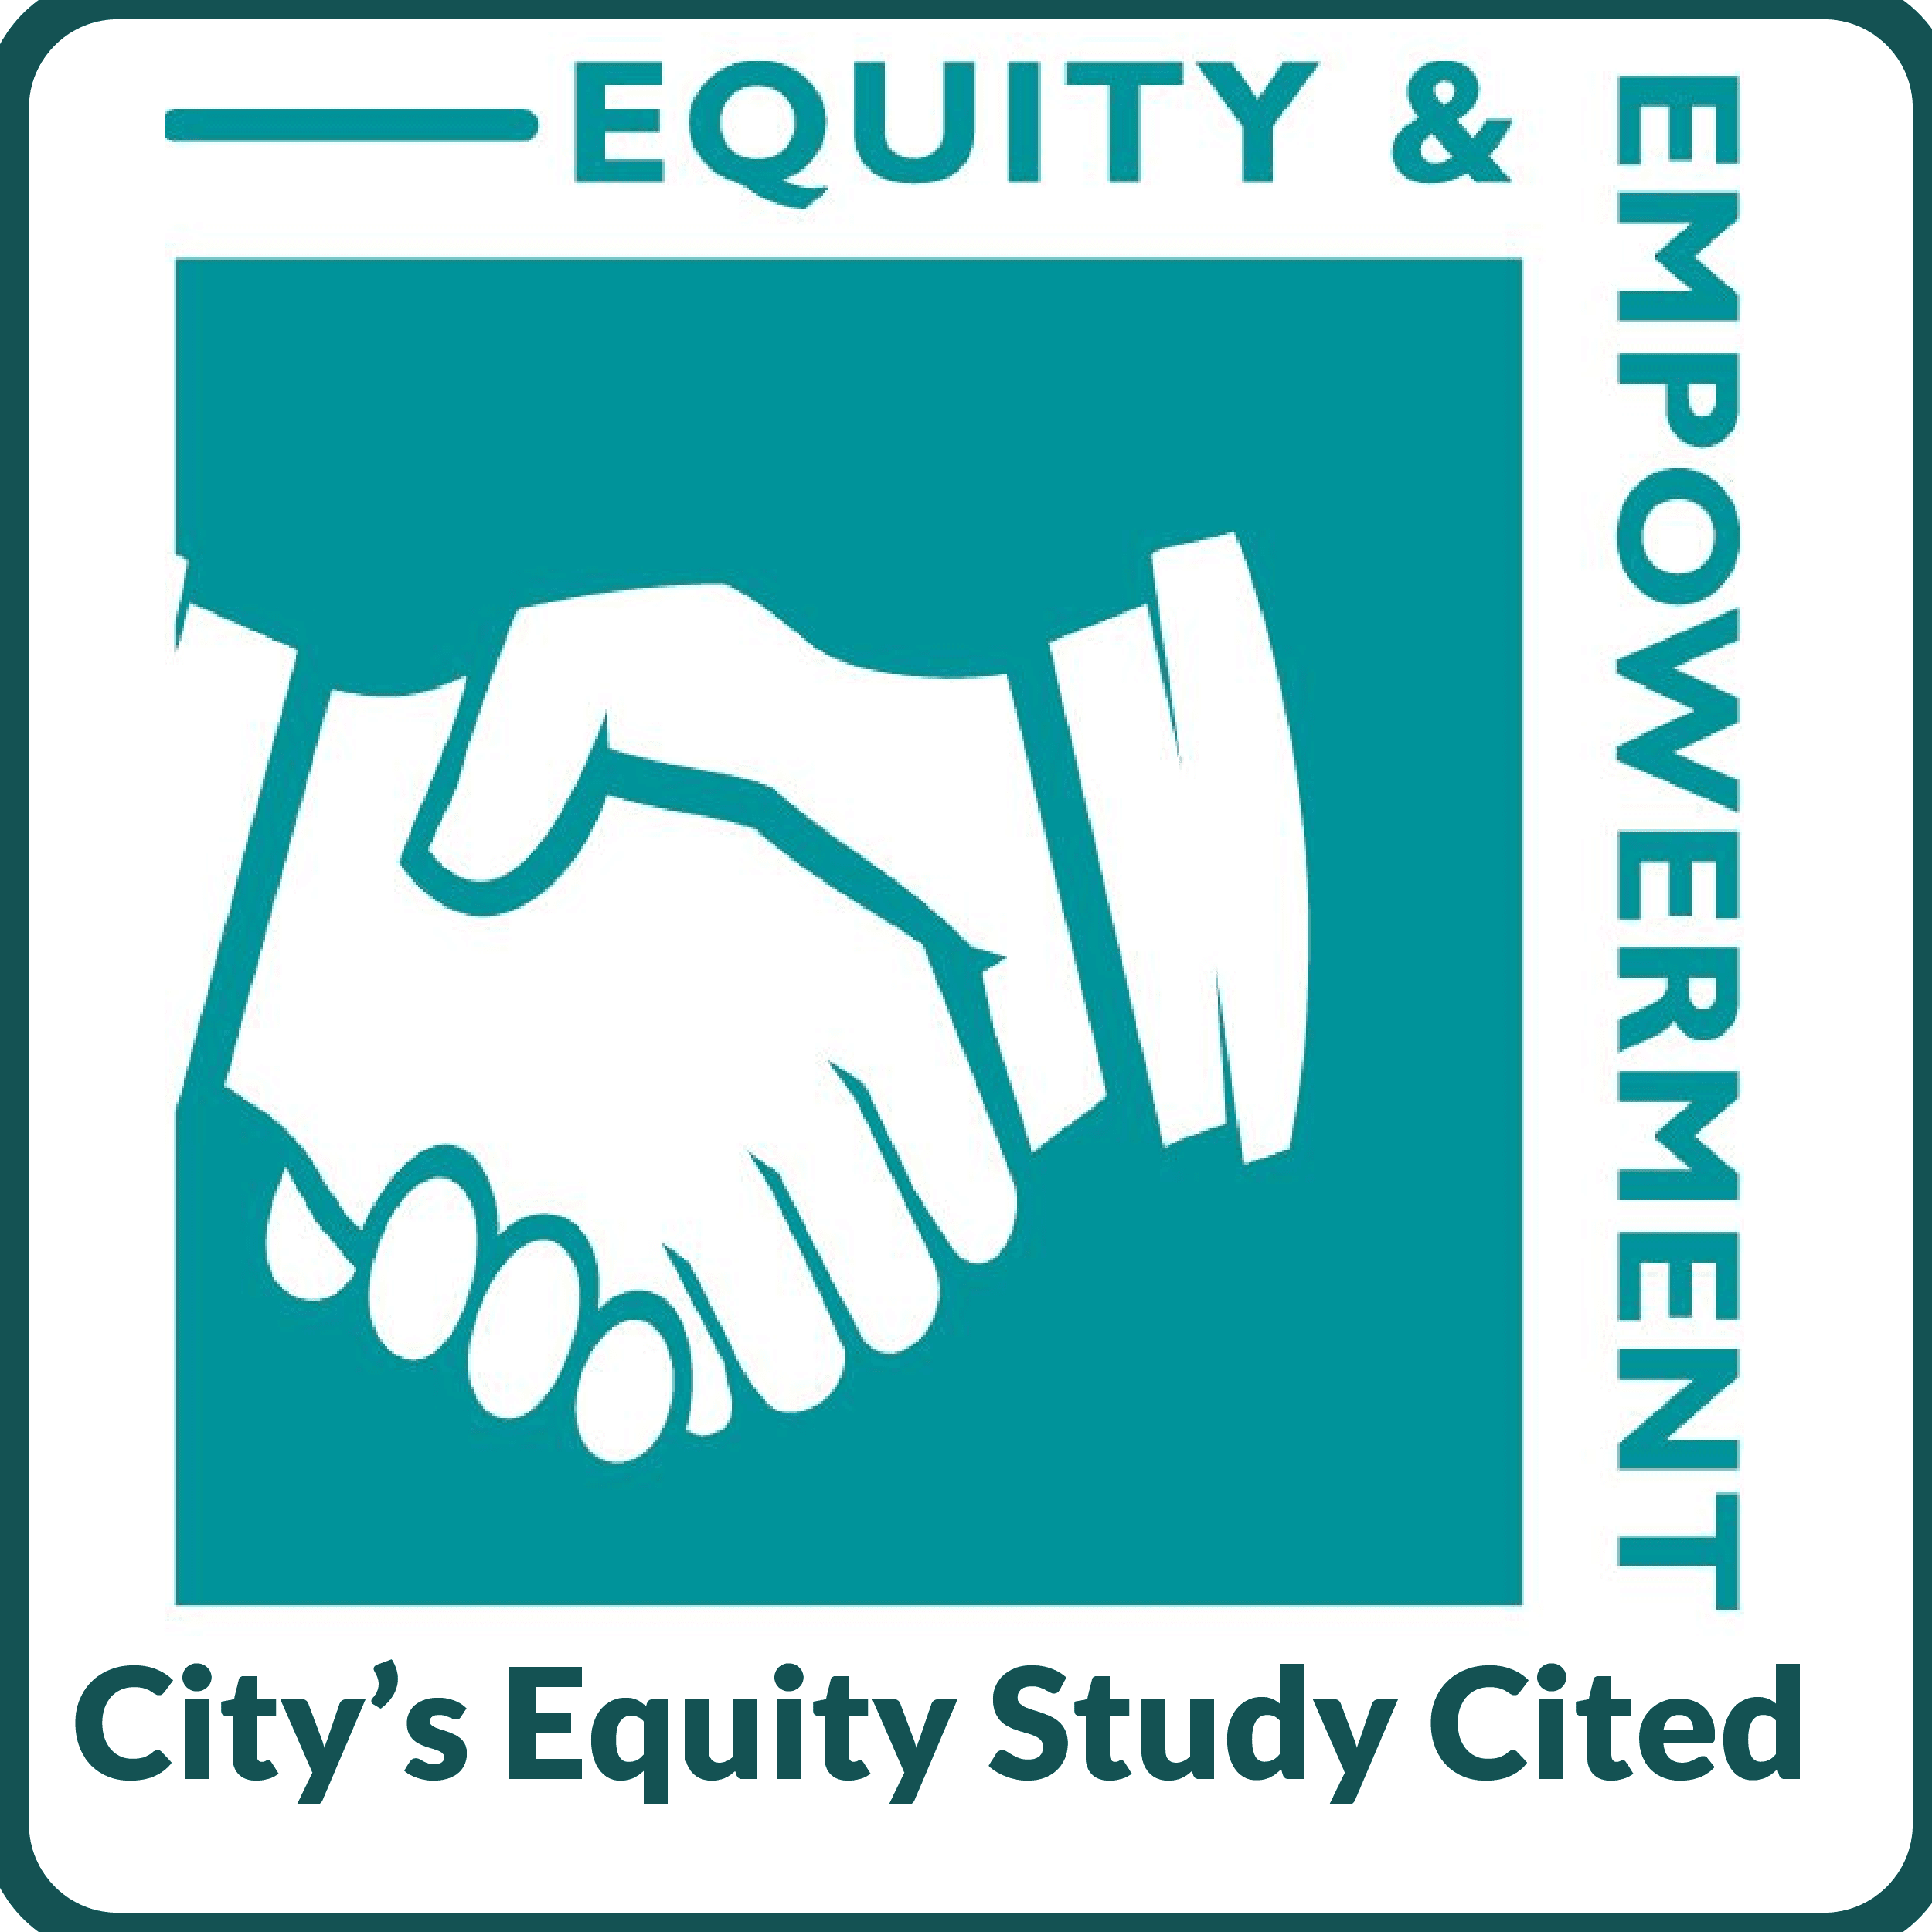 City's Equity Study cited